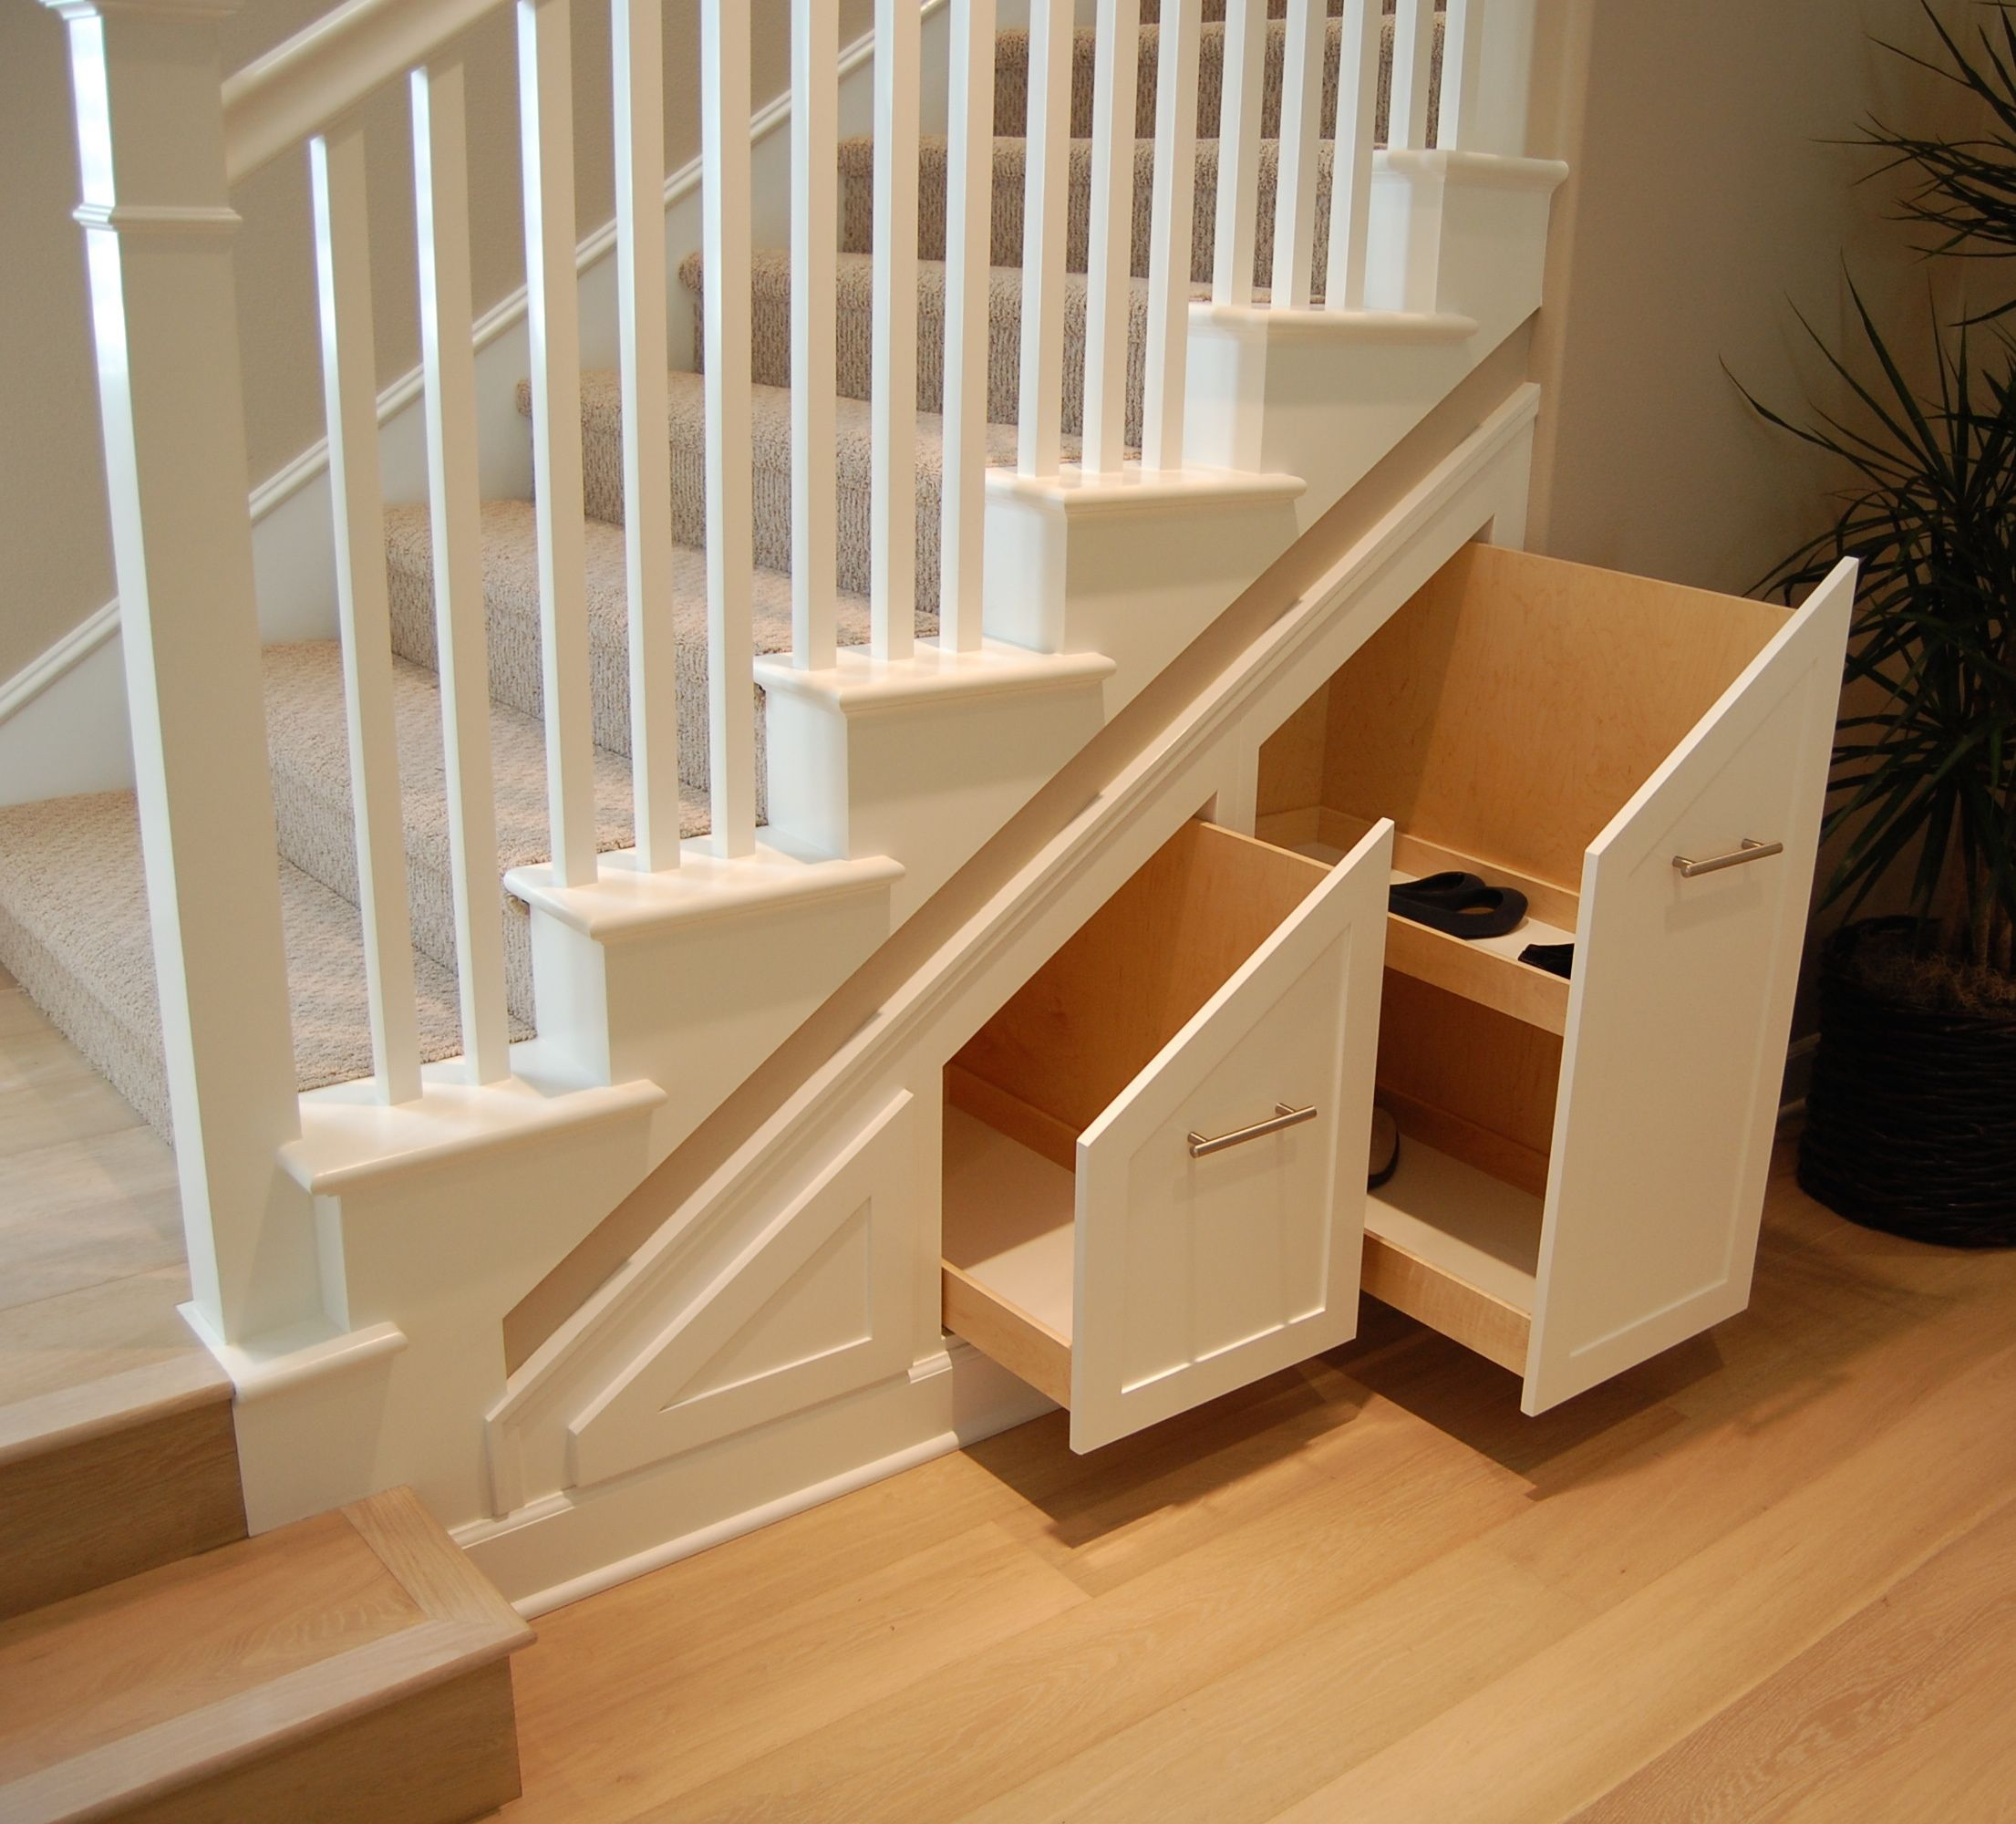 The Amazing Under Stair Storage Ideas To Maximize The